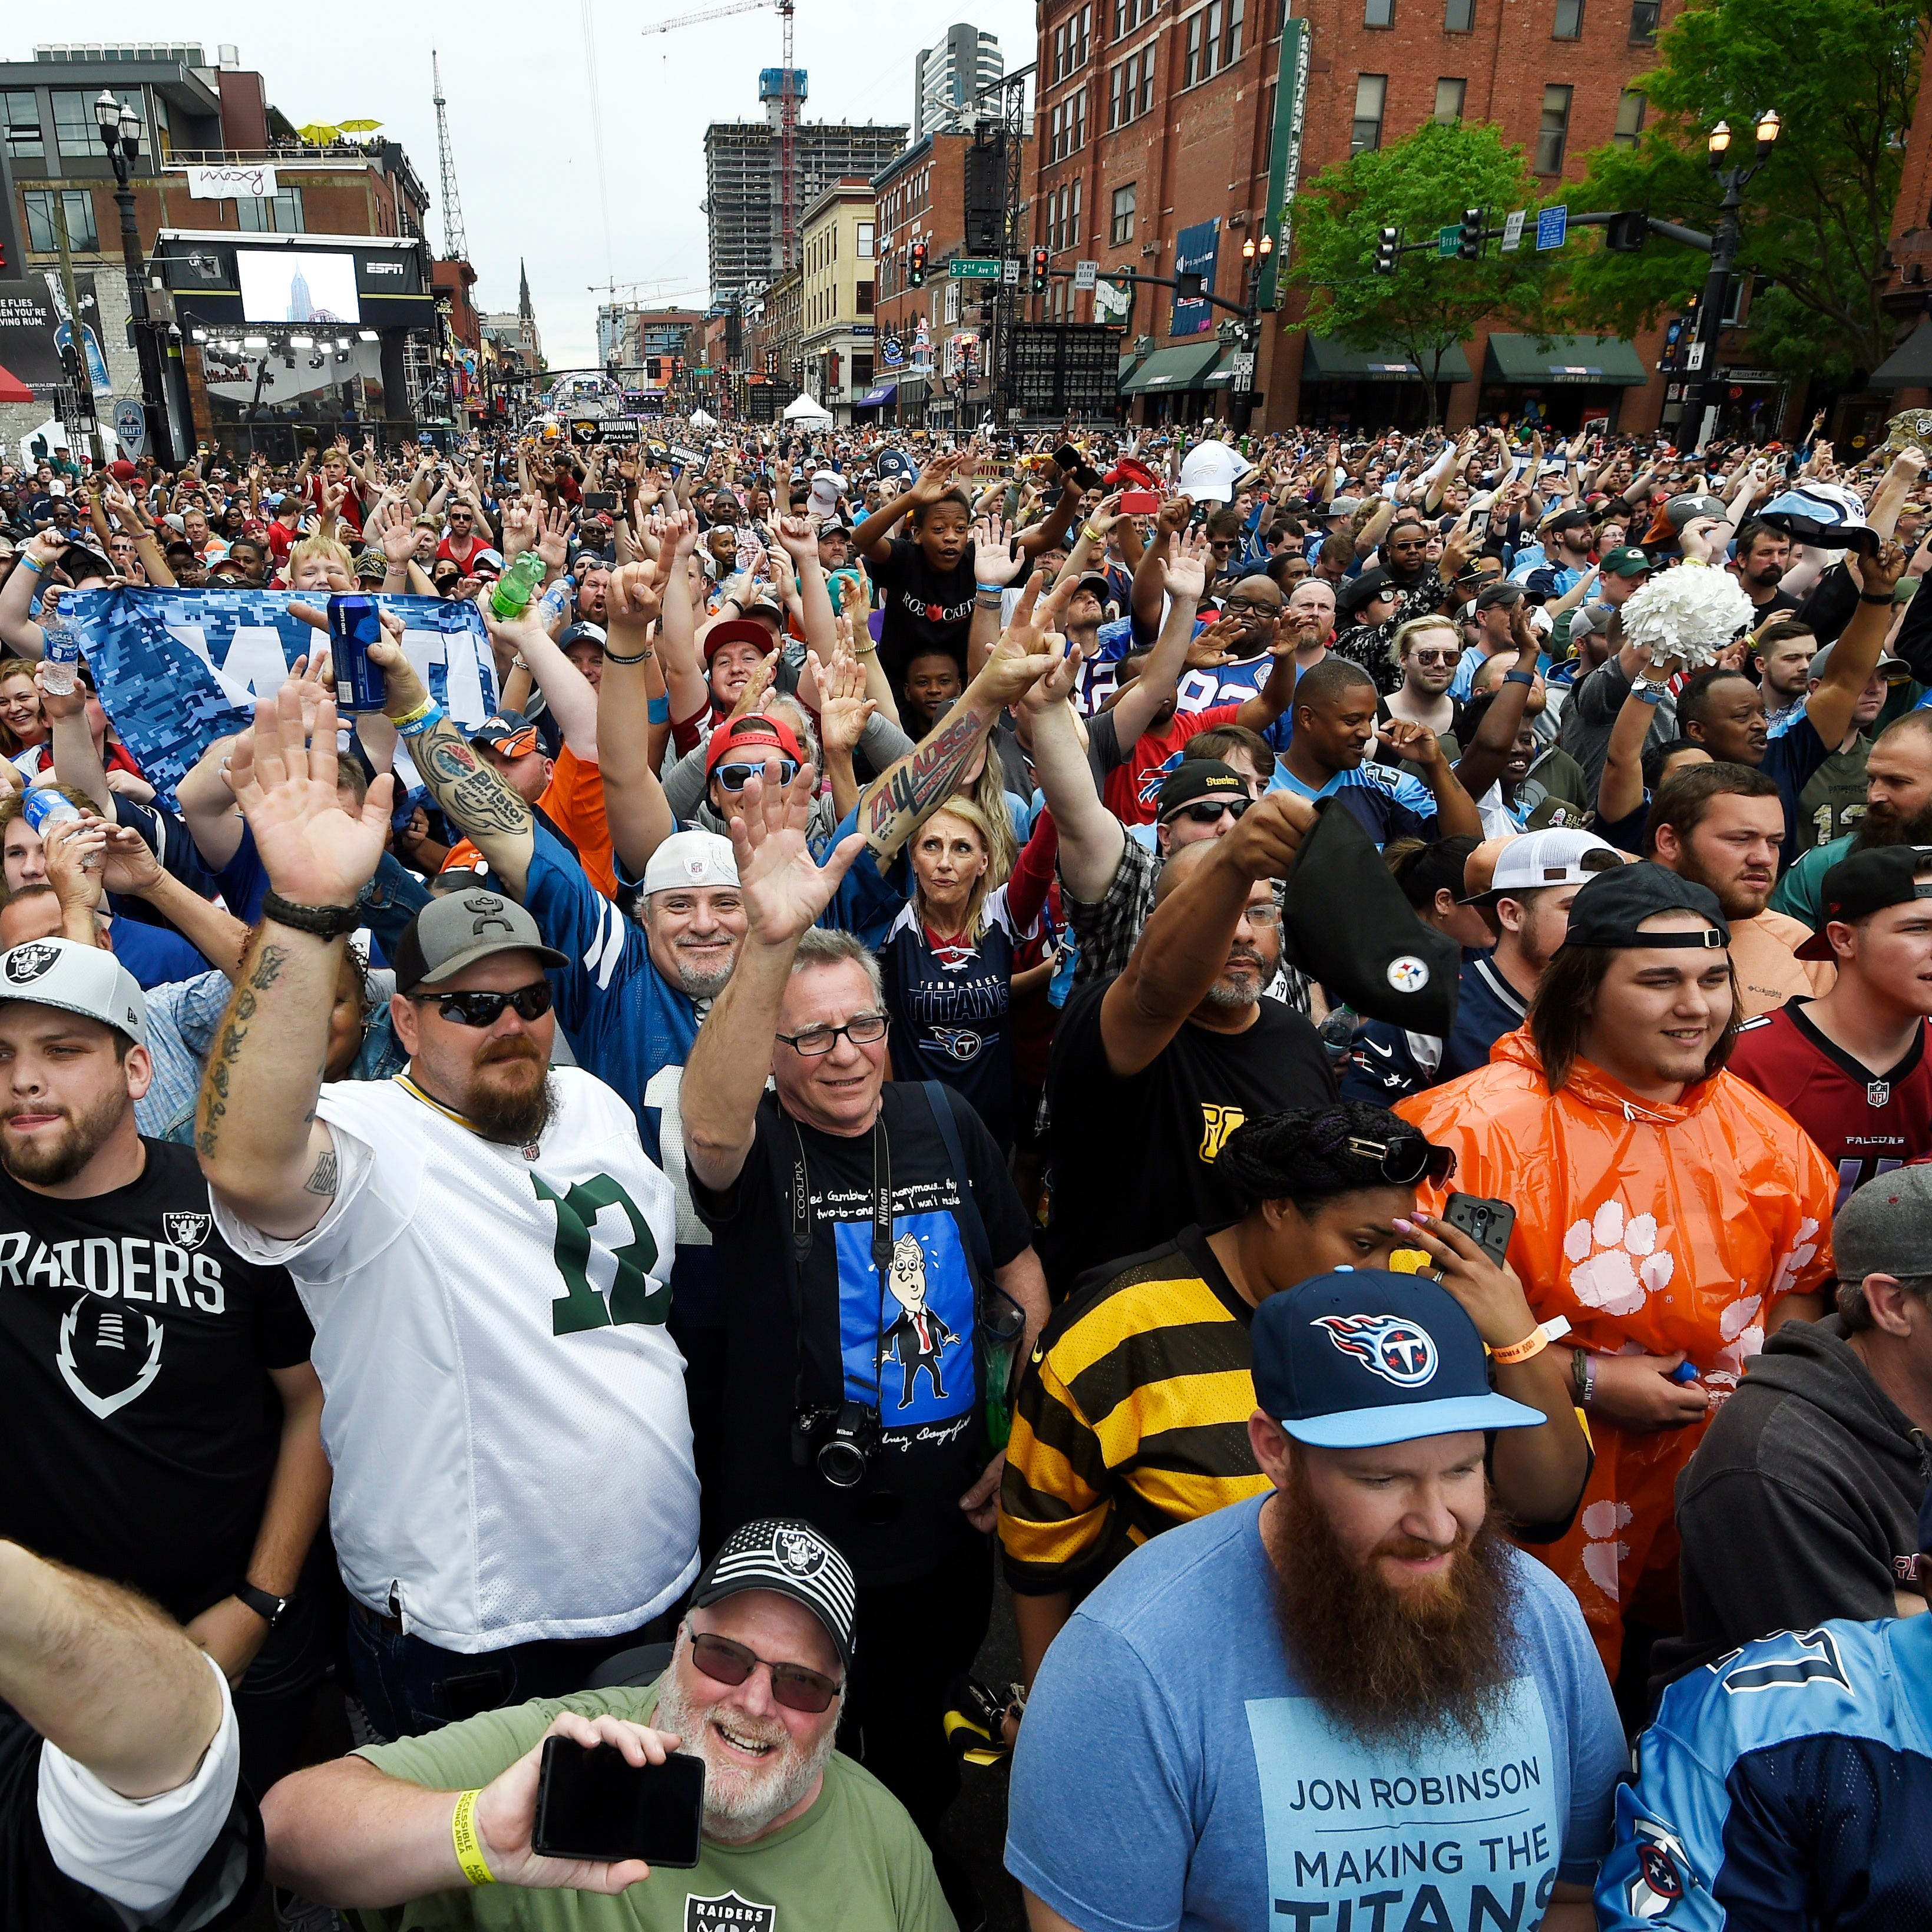 More than 100K fans turn Lower Broadway into a madhouse as NFL Draft takes over Nashville